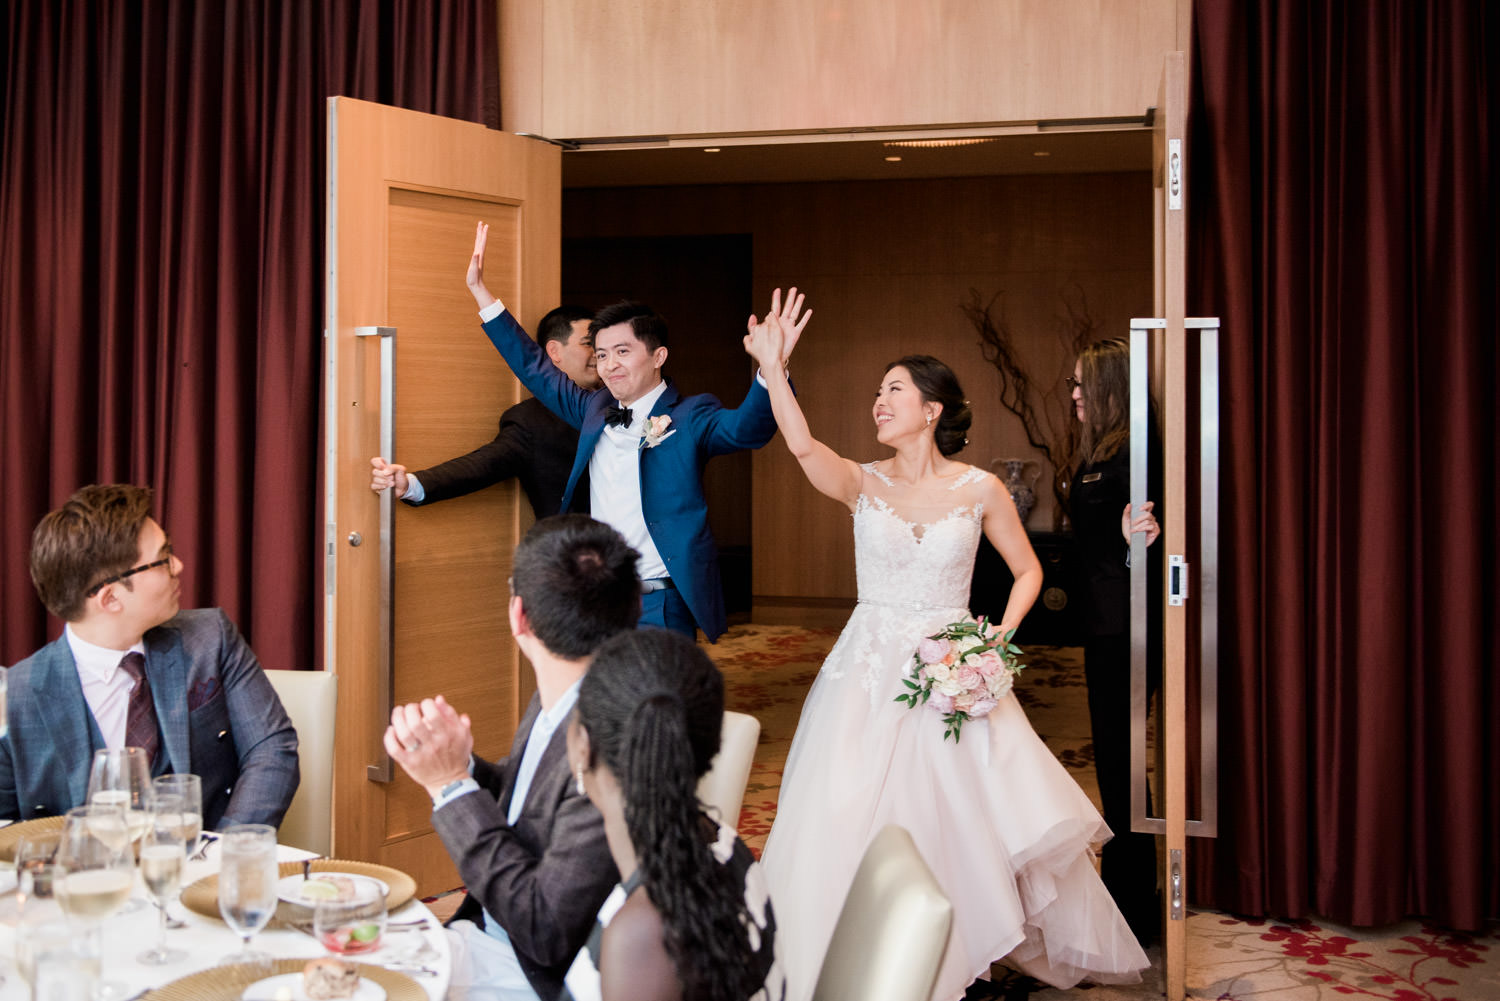 Bride and groom enter reception at Elegant wedding reception at the Shangri-La Hotel in Toronto